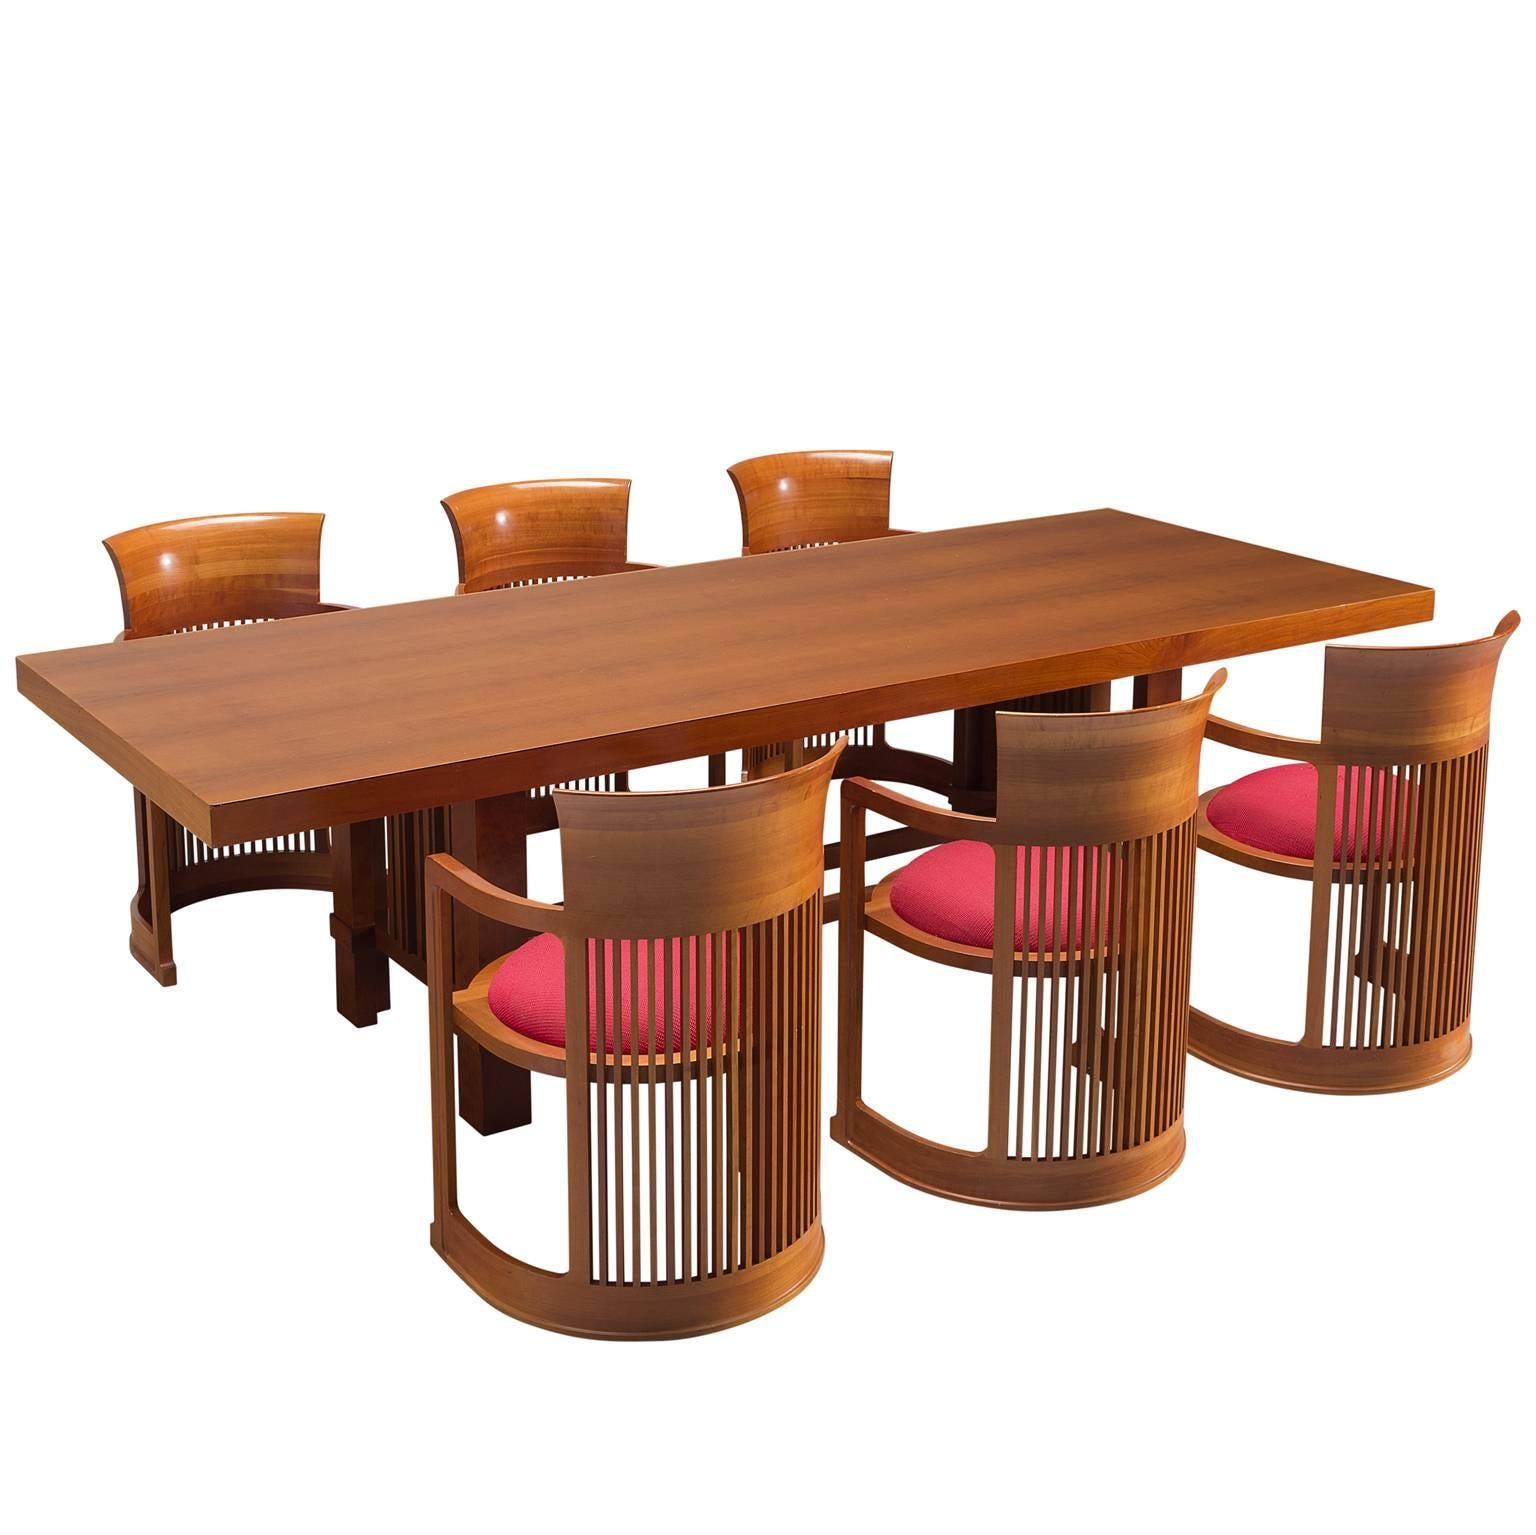 Frank Lloyd Wright Taliesin Dining Table And Barrel Chairs For Cina At 1stdibs